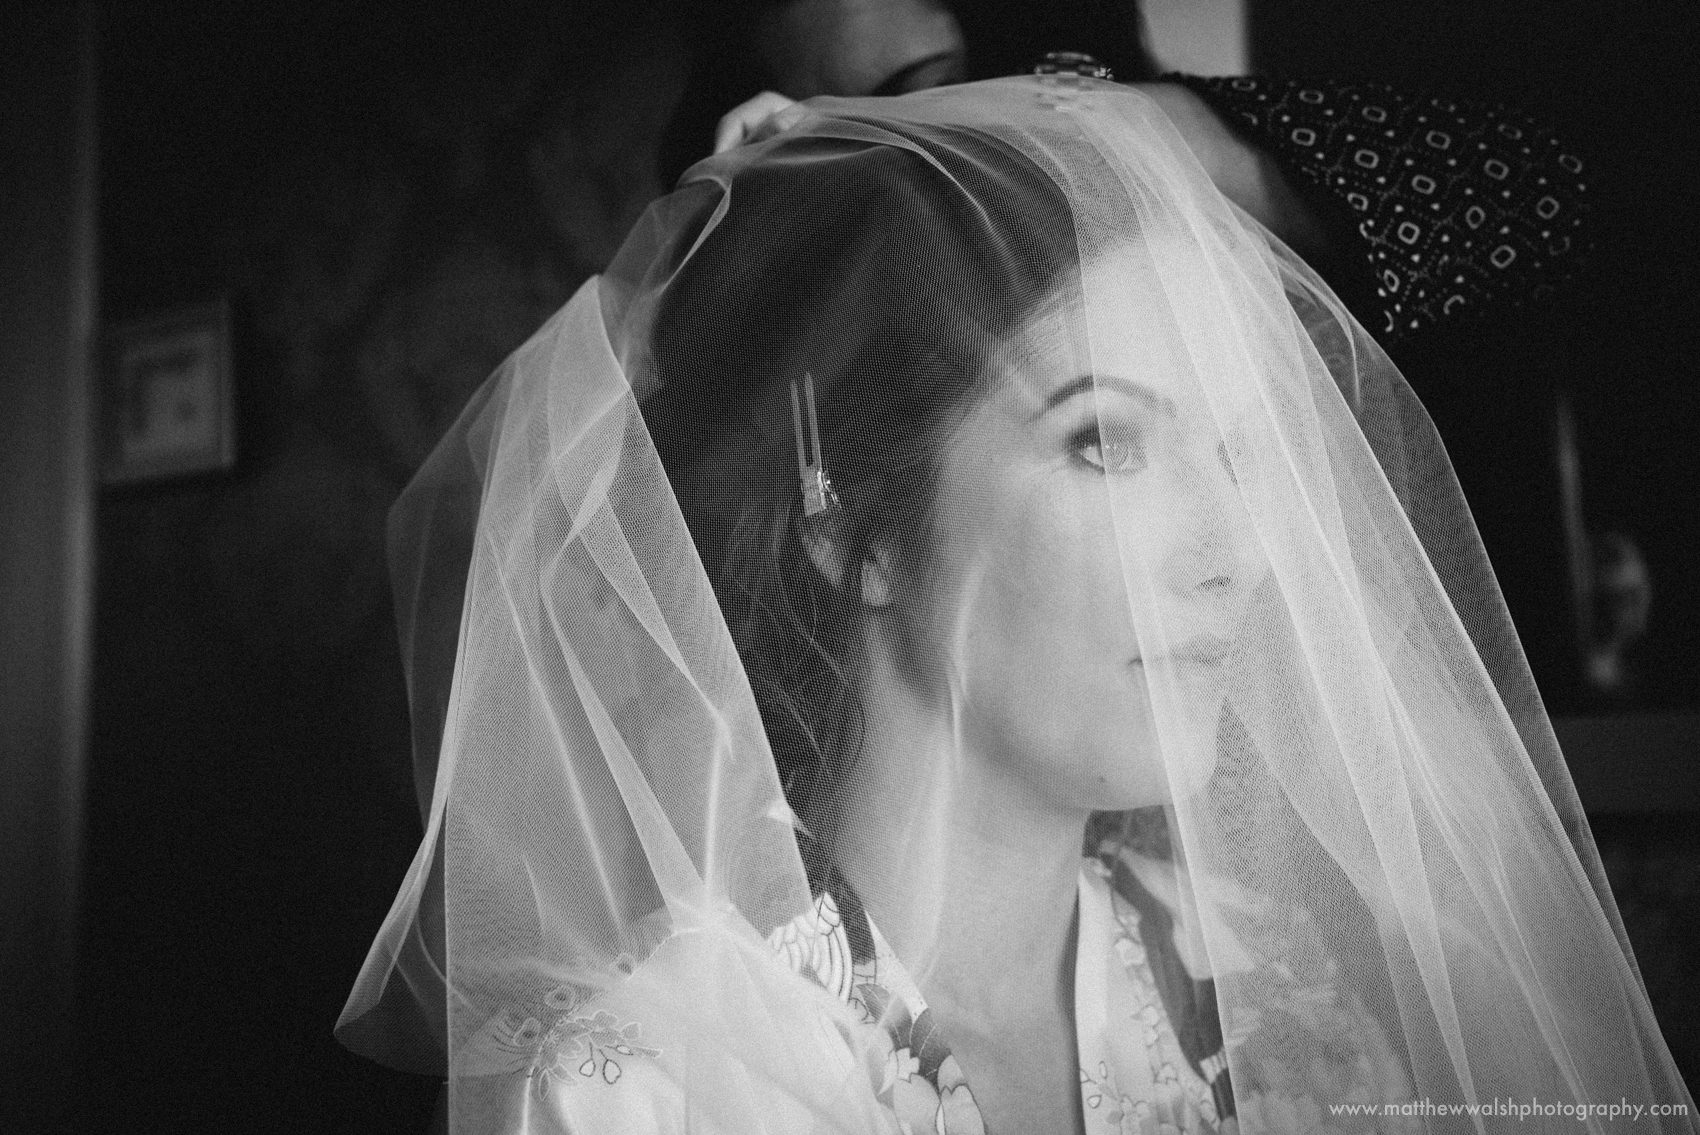 The bride with the veil over her face and looking fantastic